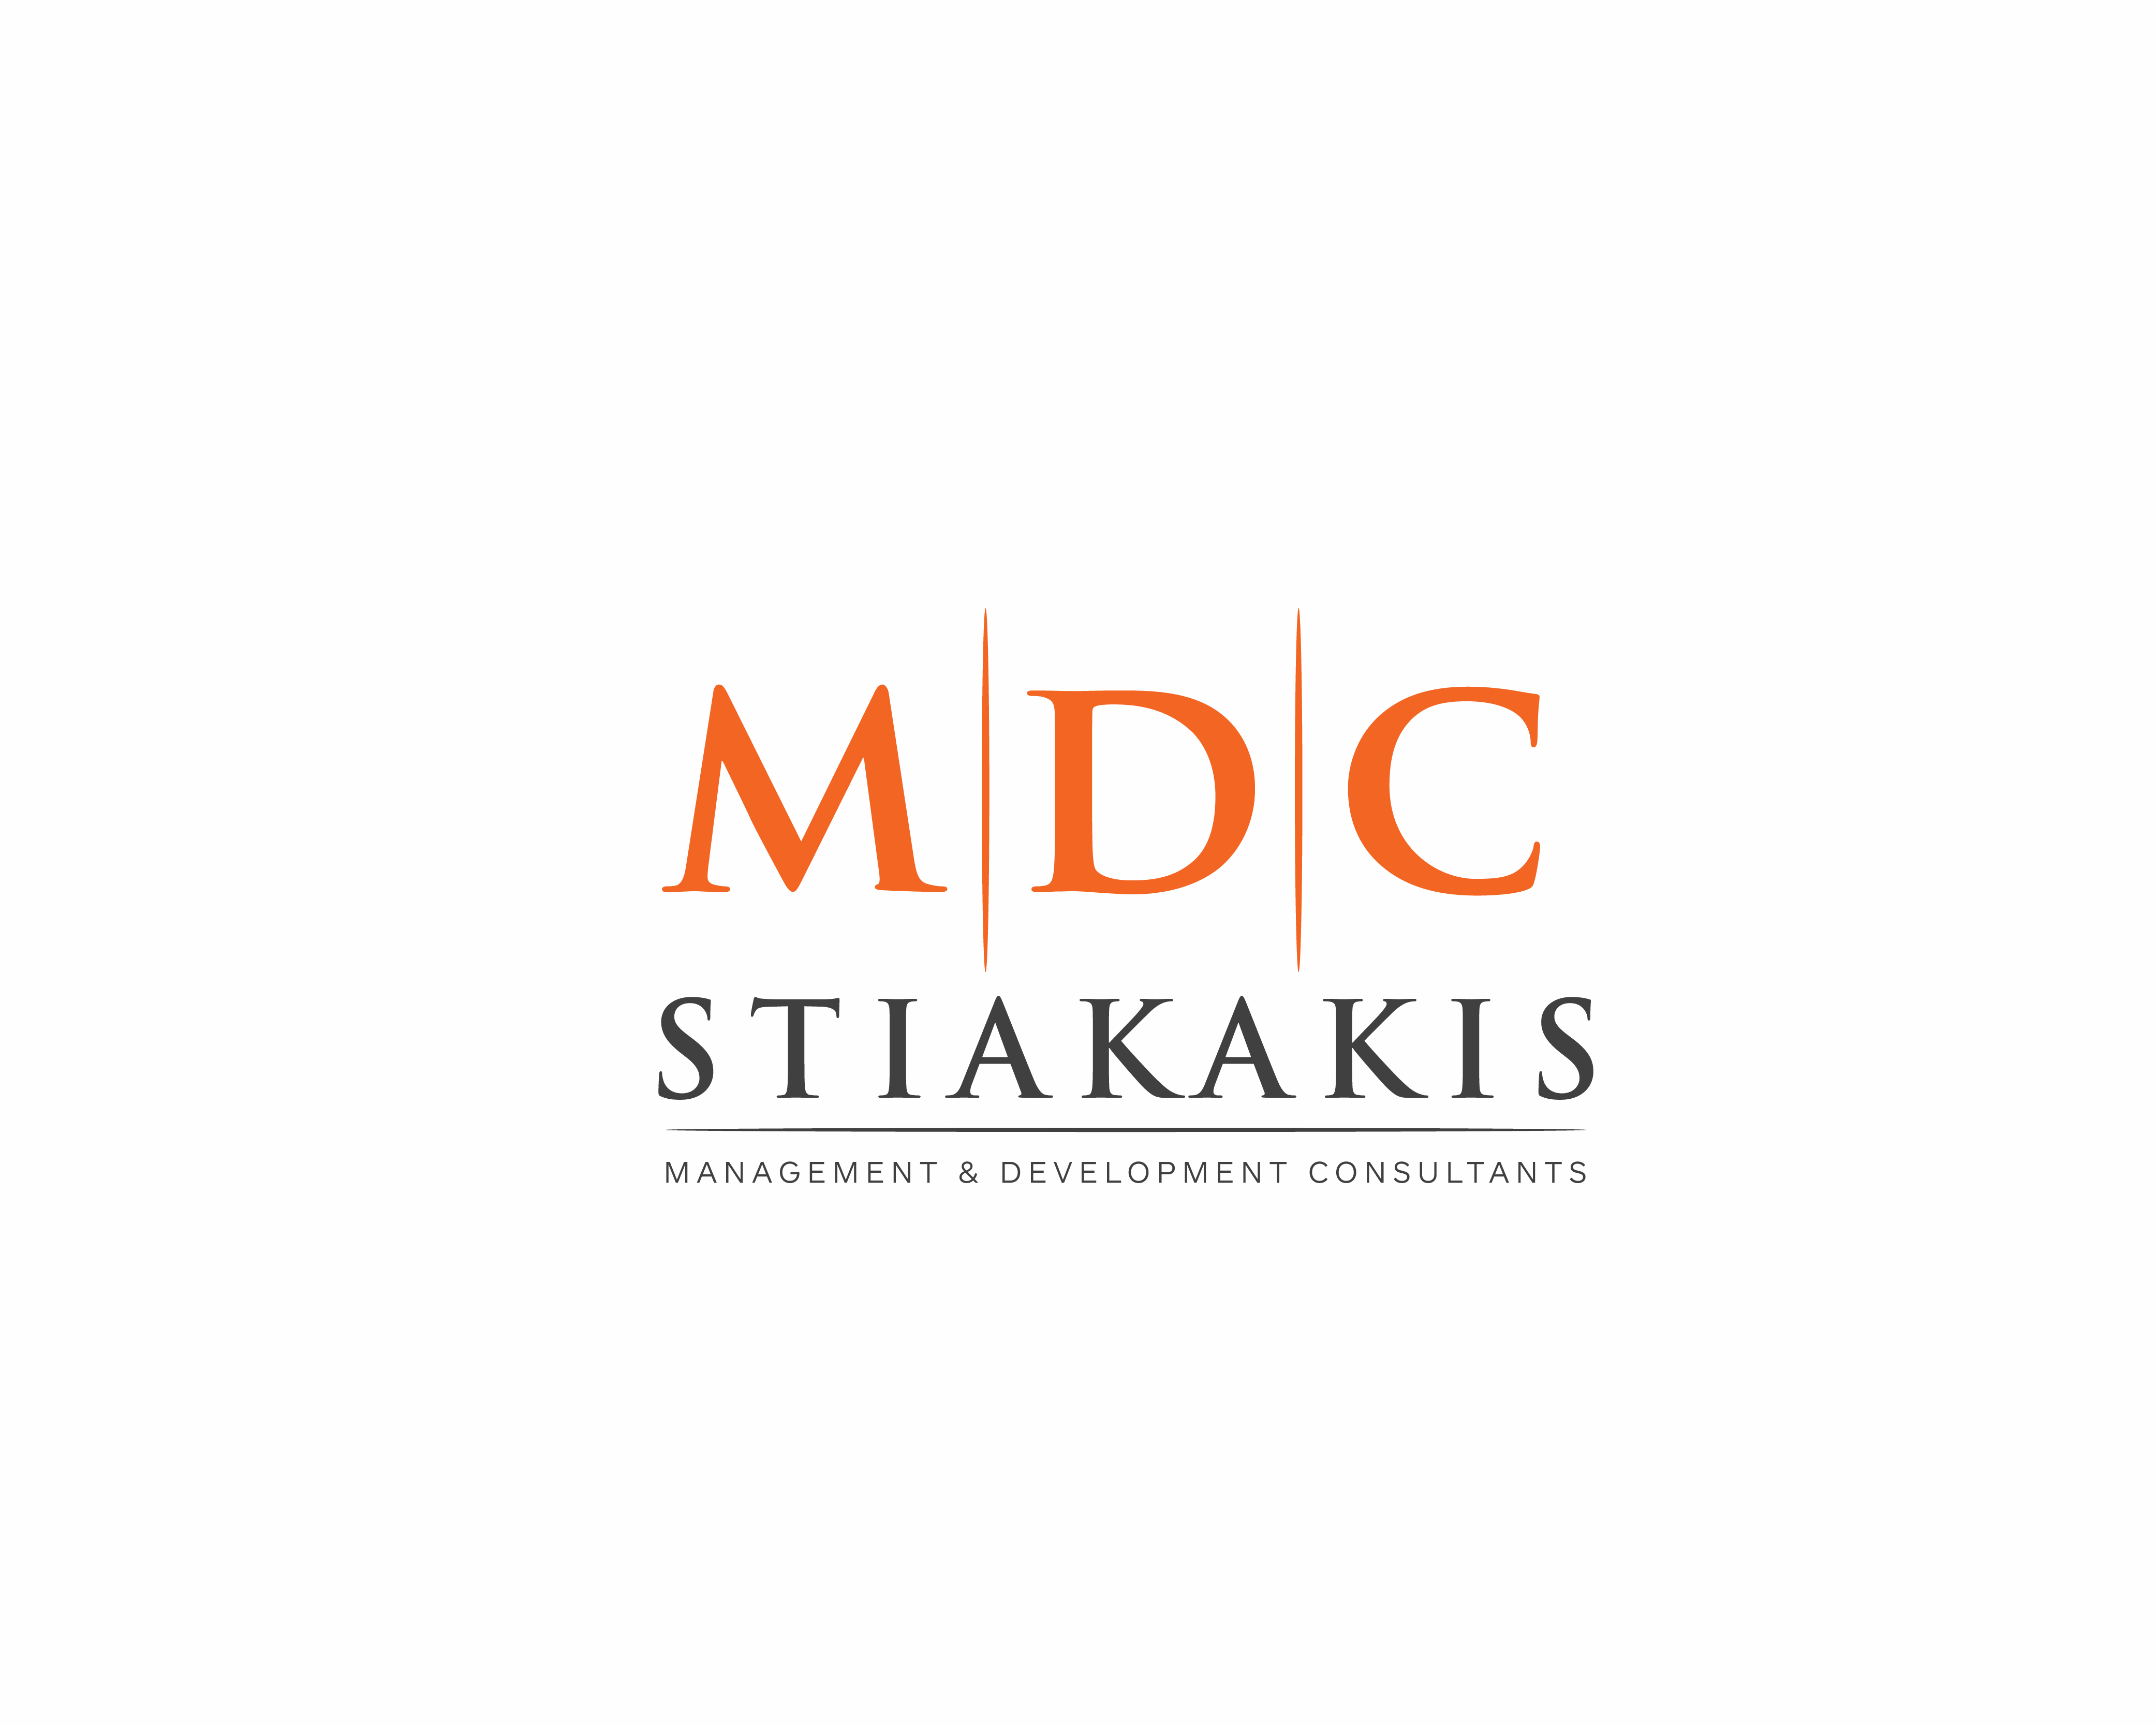 Logo Design by roc - Entry No. 21 in the Logo Design Contest Unique Logo Design Wanted for MDC STIAKAKIS.